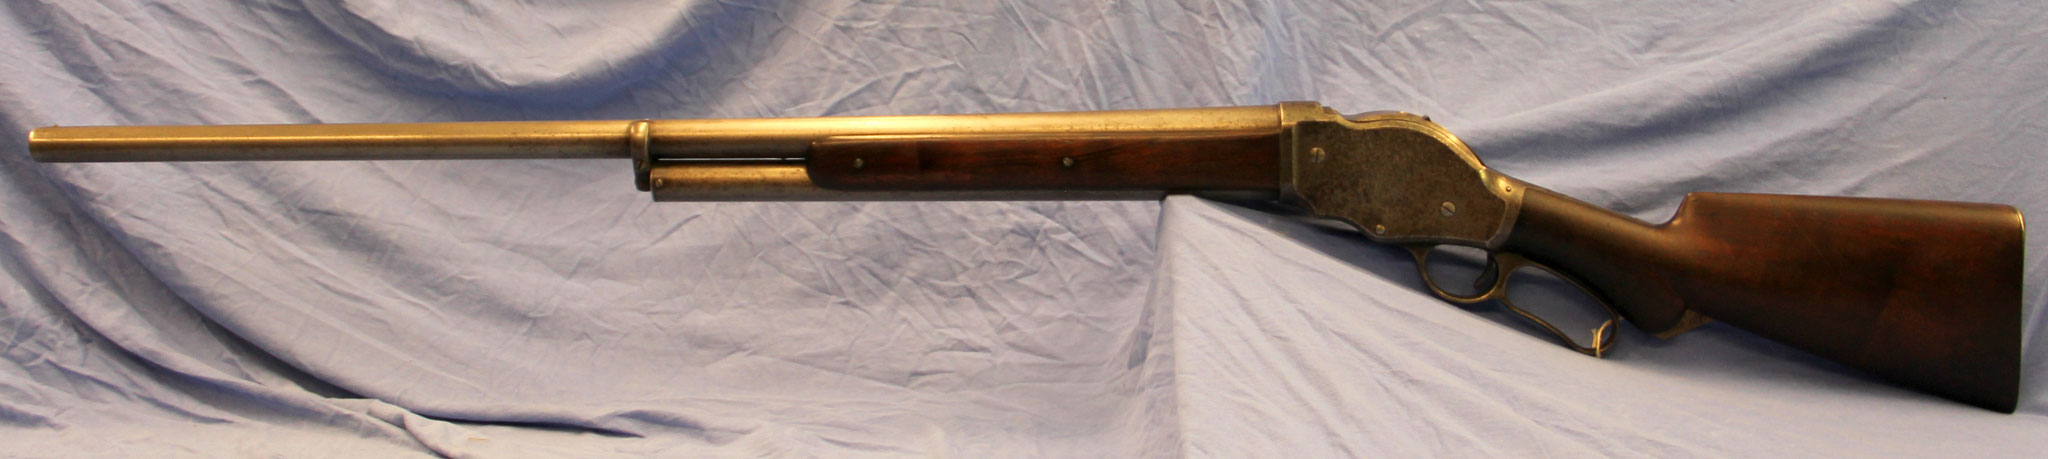 Winchester lever-action, model 1887, uit 1891, kal. 10 BP. € 1650,-